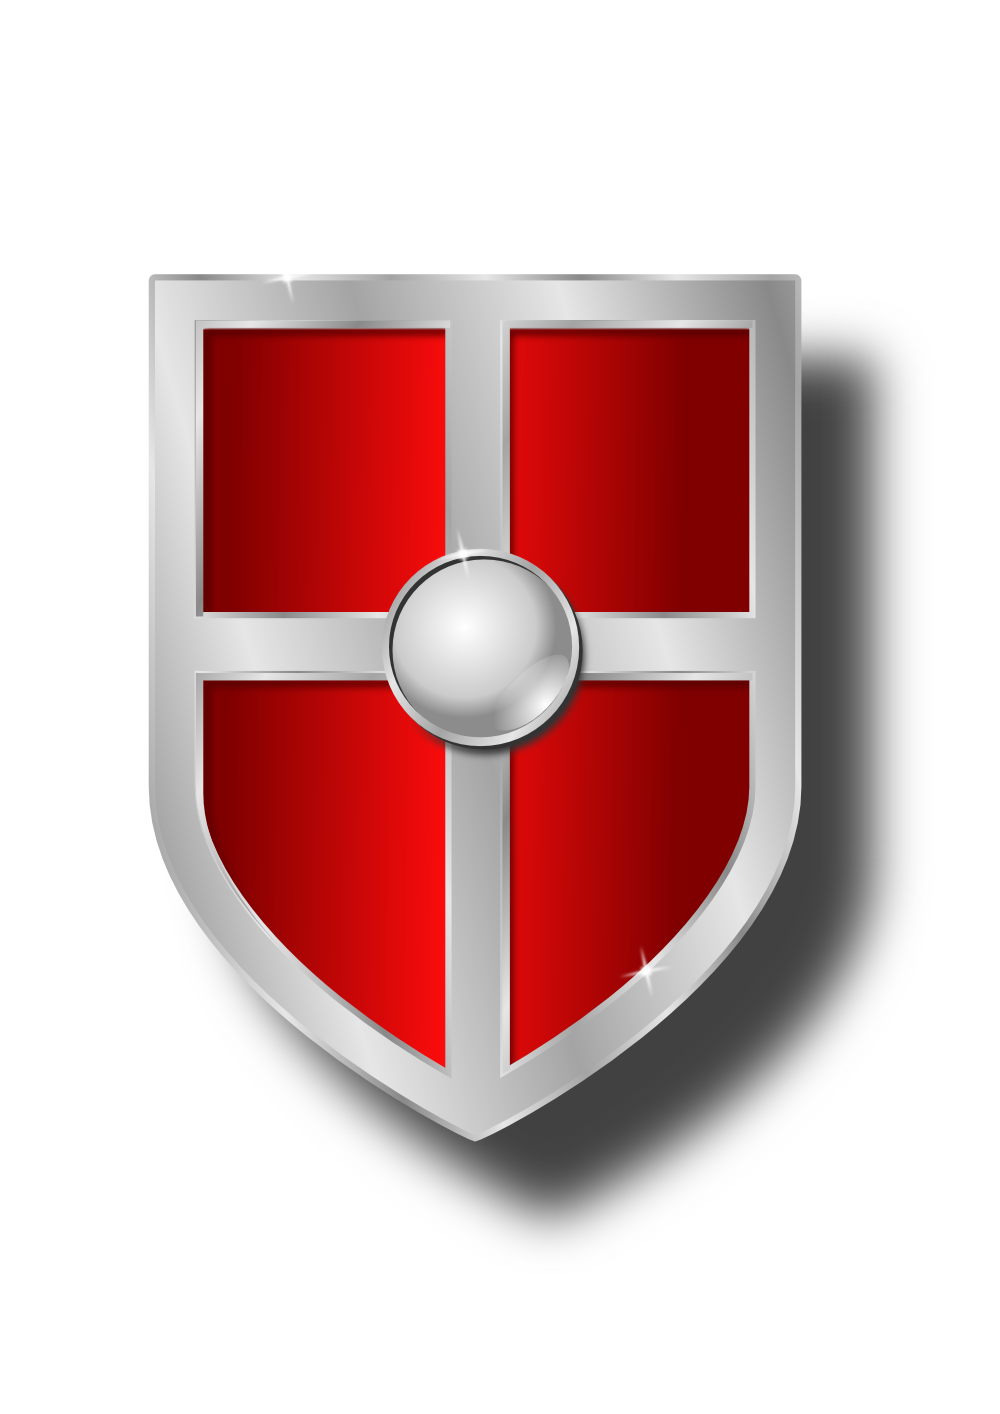 knight shield clipart